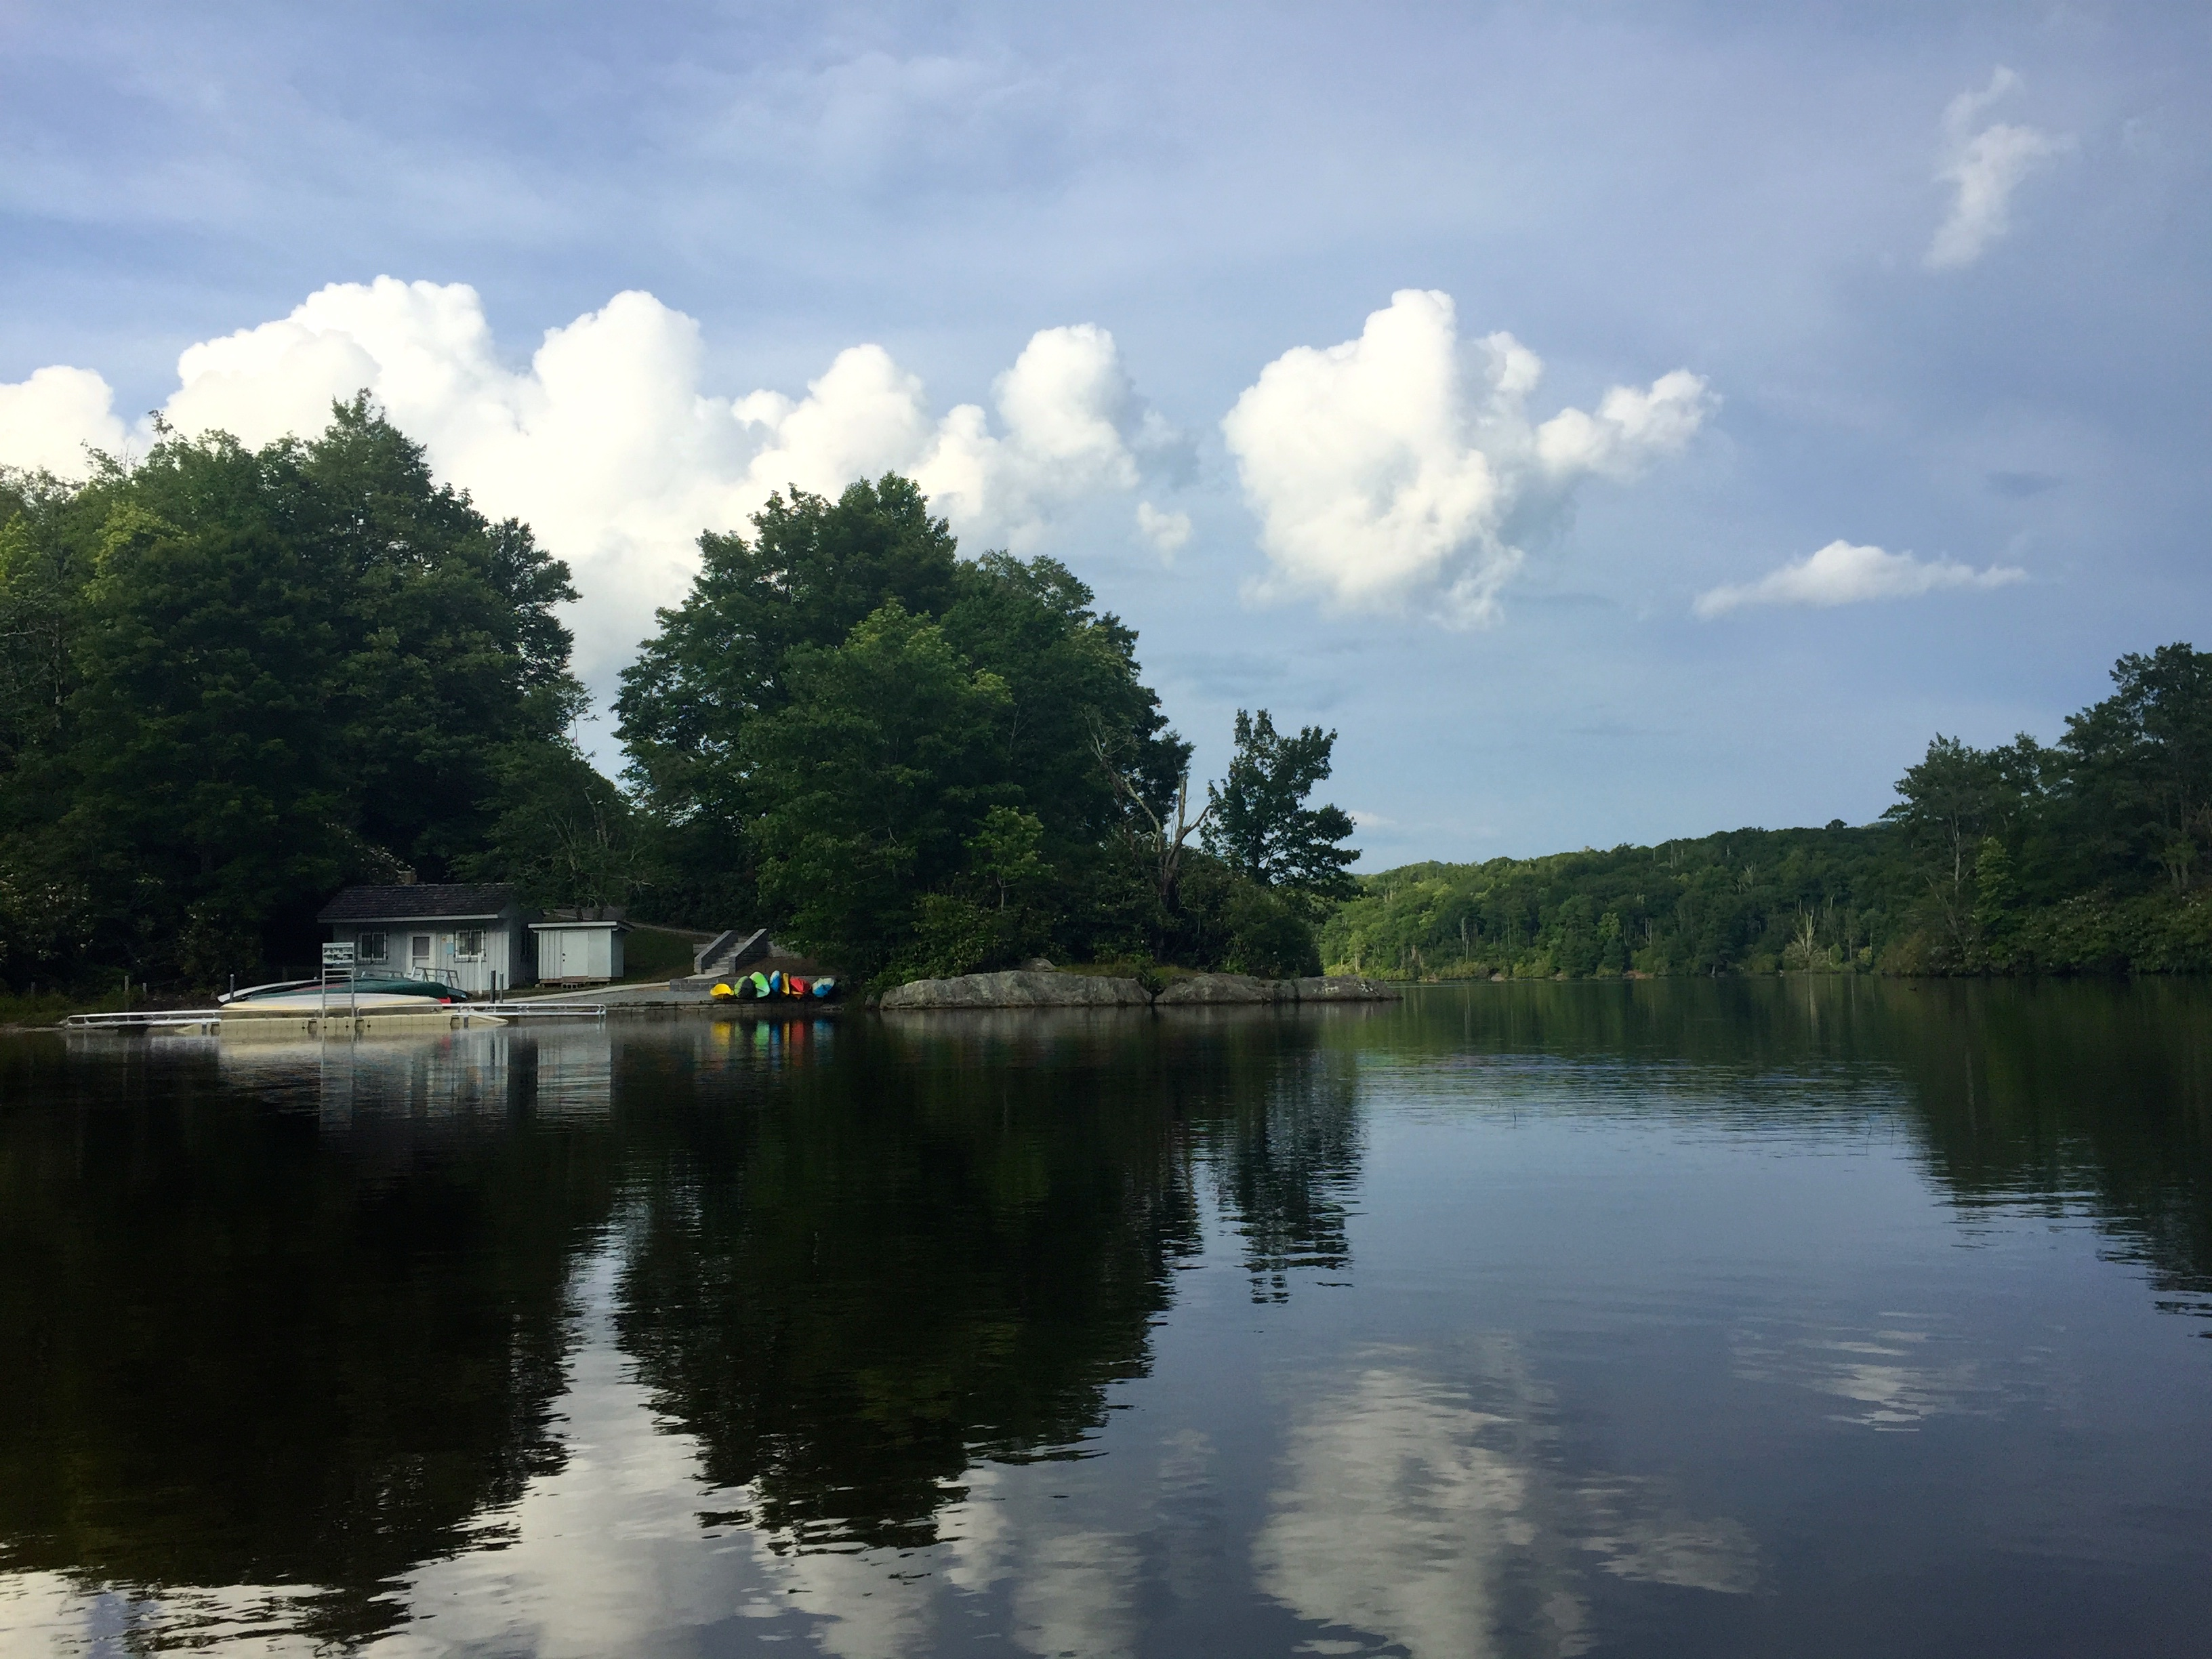 A view from the water of Price Lake Canoe and Boat Rentals, a small marina that is open from April to October.